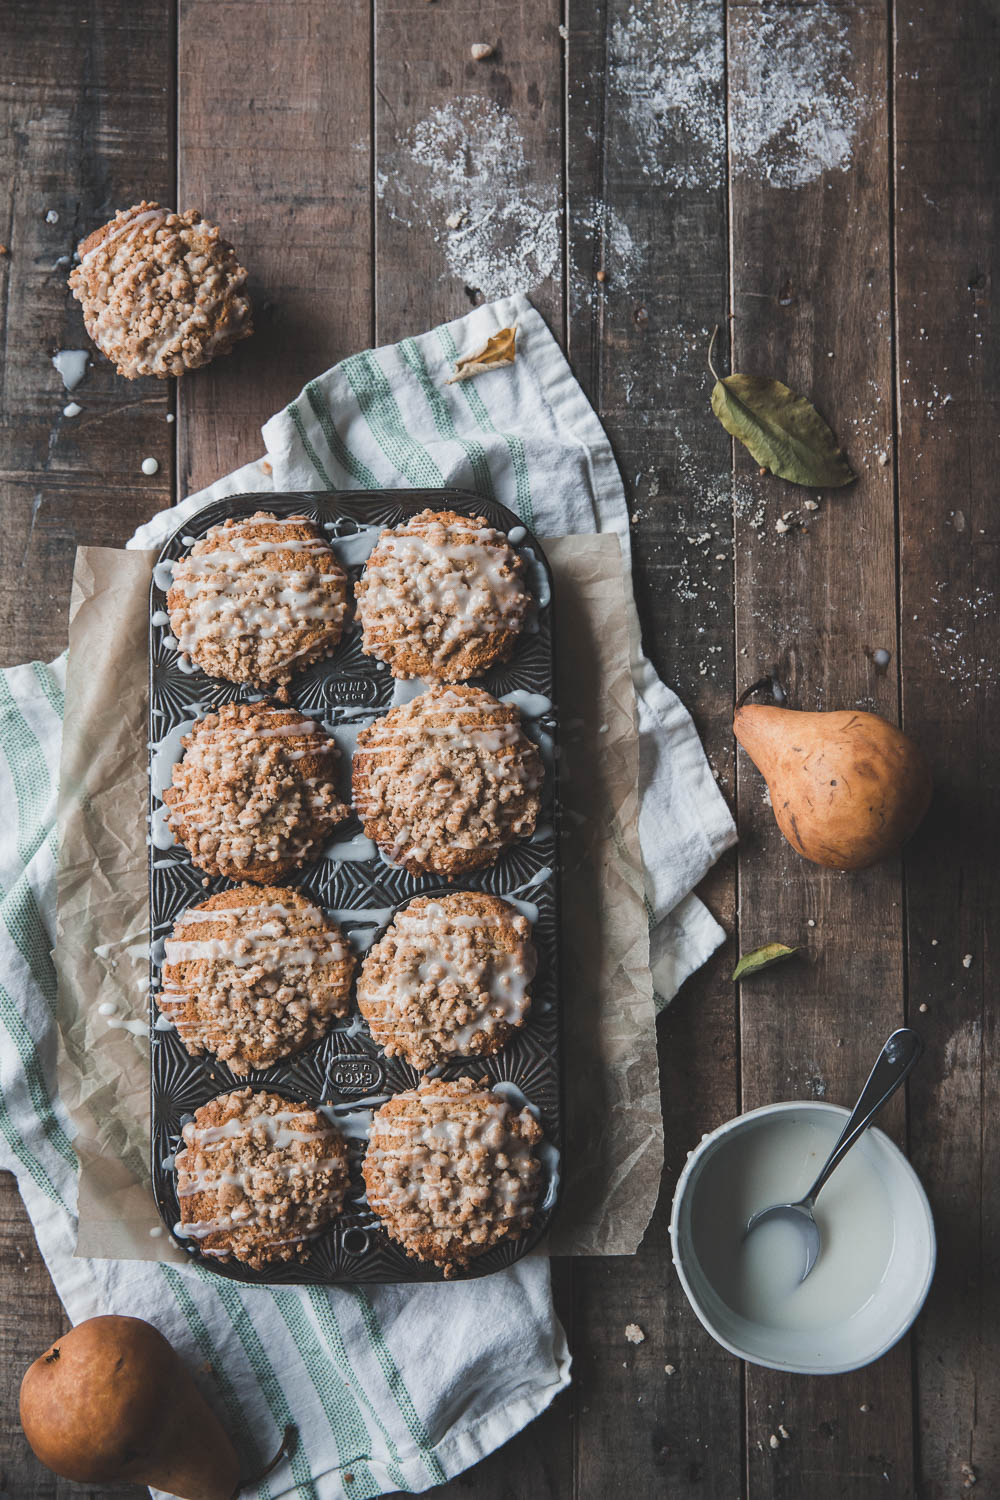 Bragg_Kate_Pear_Ginger_Muffins-6127.jpg